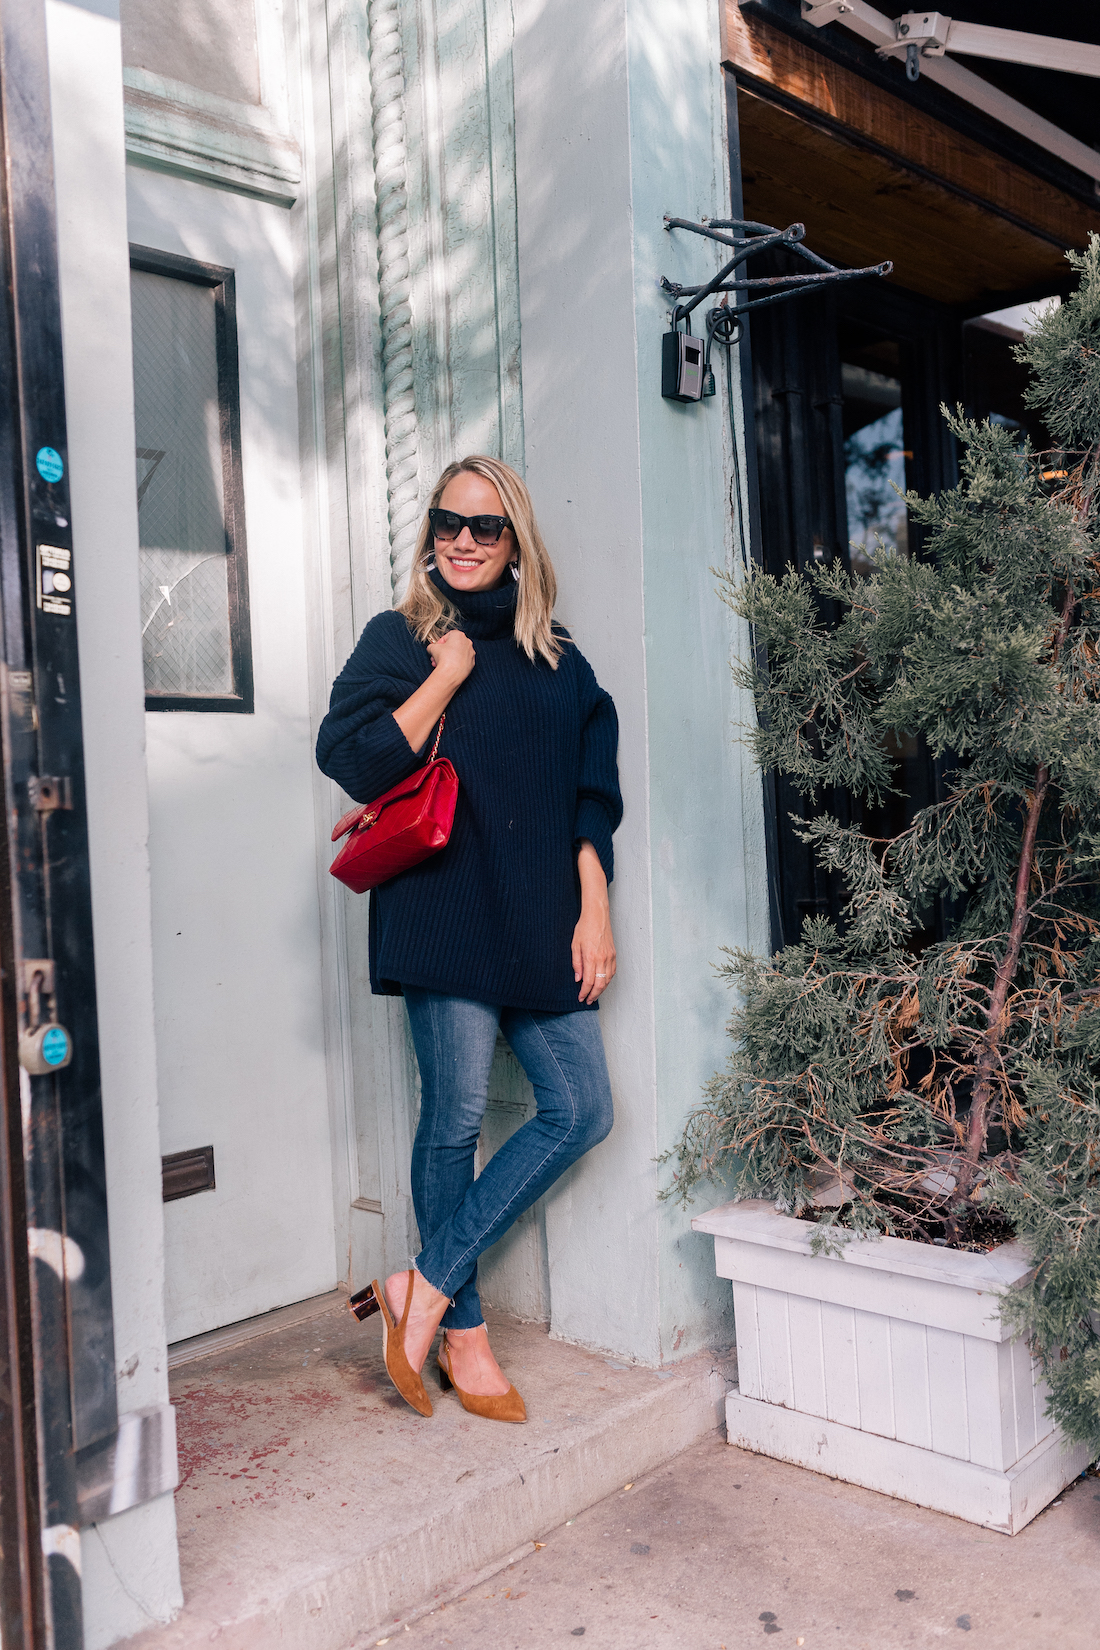 Outfit Details: Acne Oversized Sweater // Good American Jeans // Vintage Chanel Bag // Rachel Comey Earrings // Celine Sunglasses // Sarah Flint Slingbacks